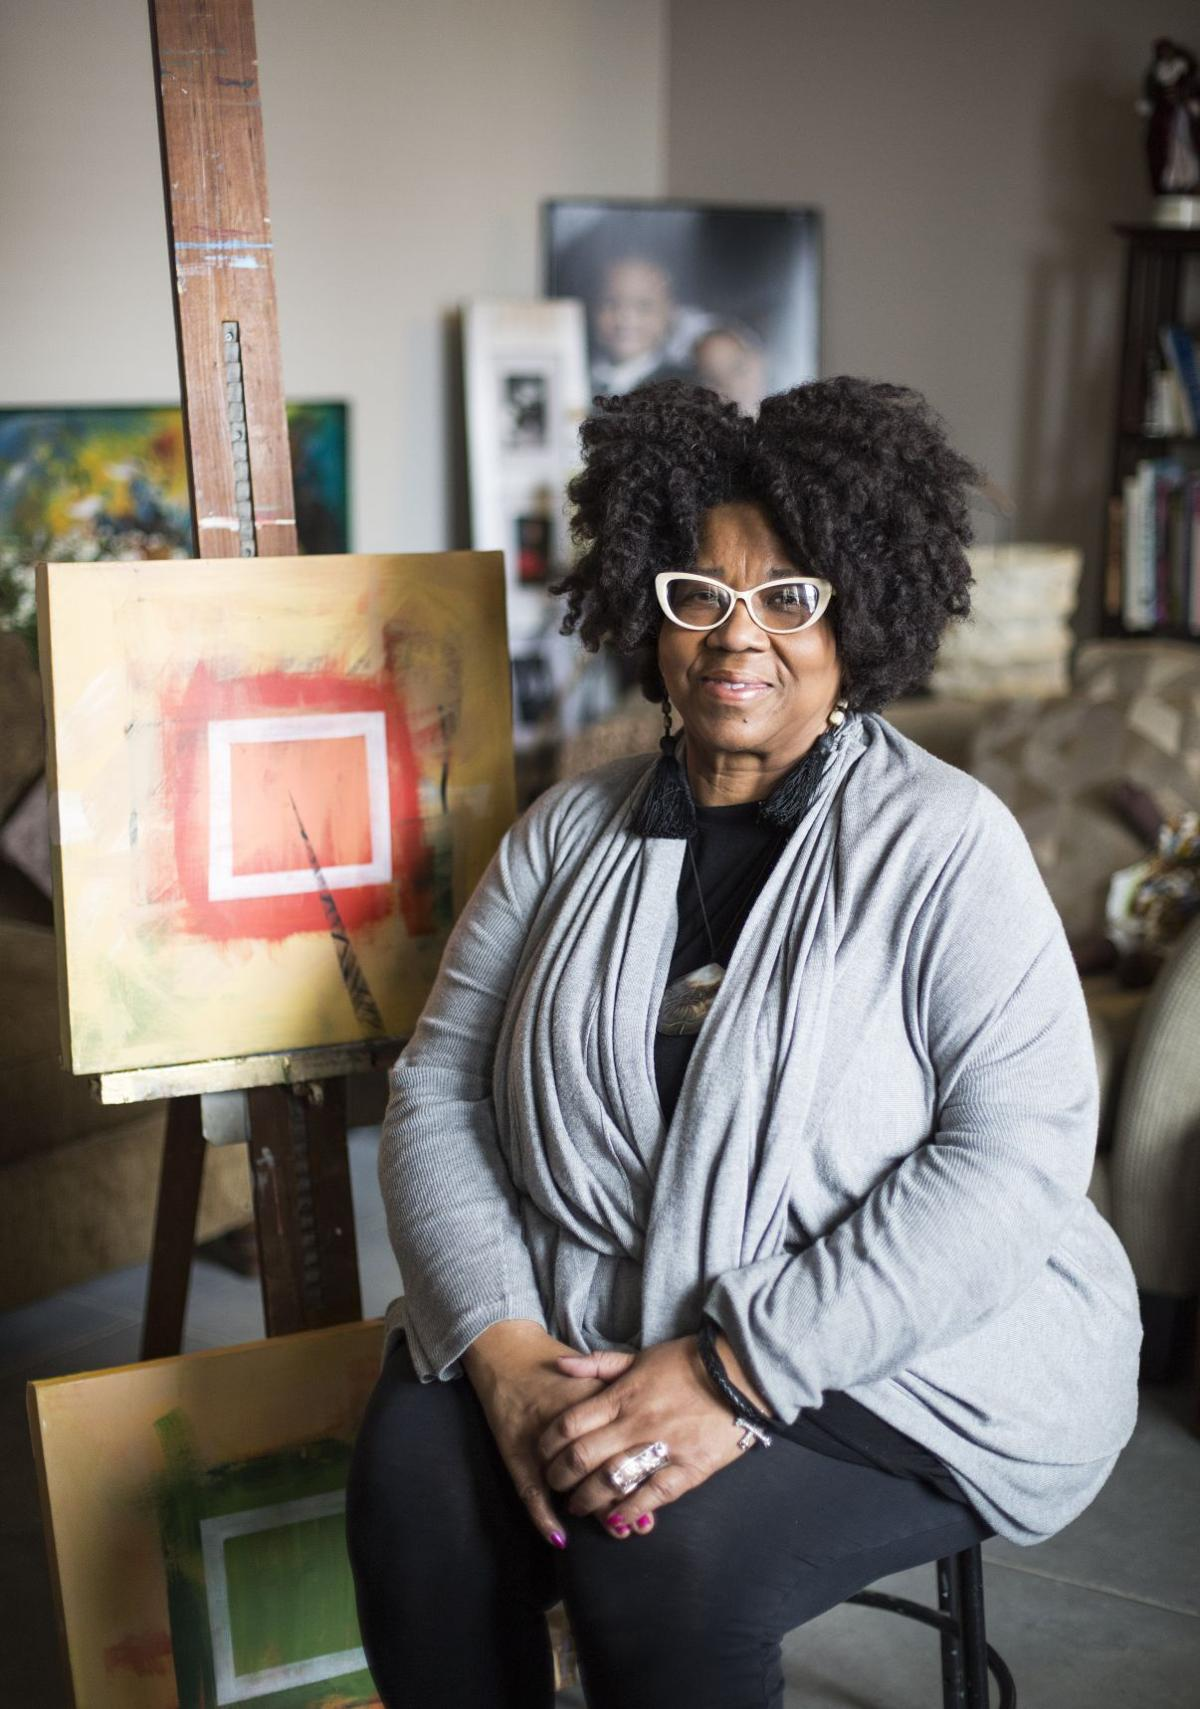 Artist gave up space for creative energy in Grand Center